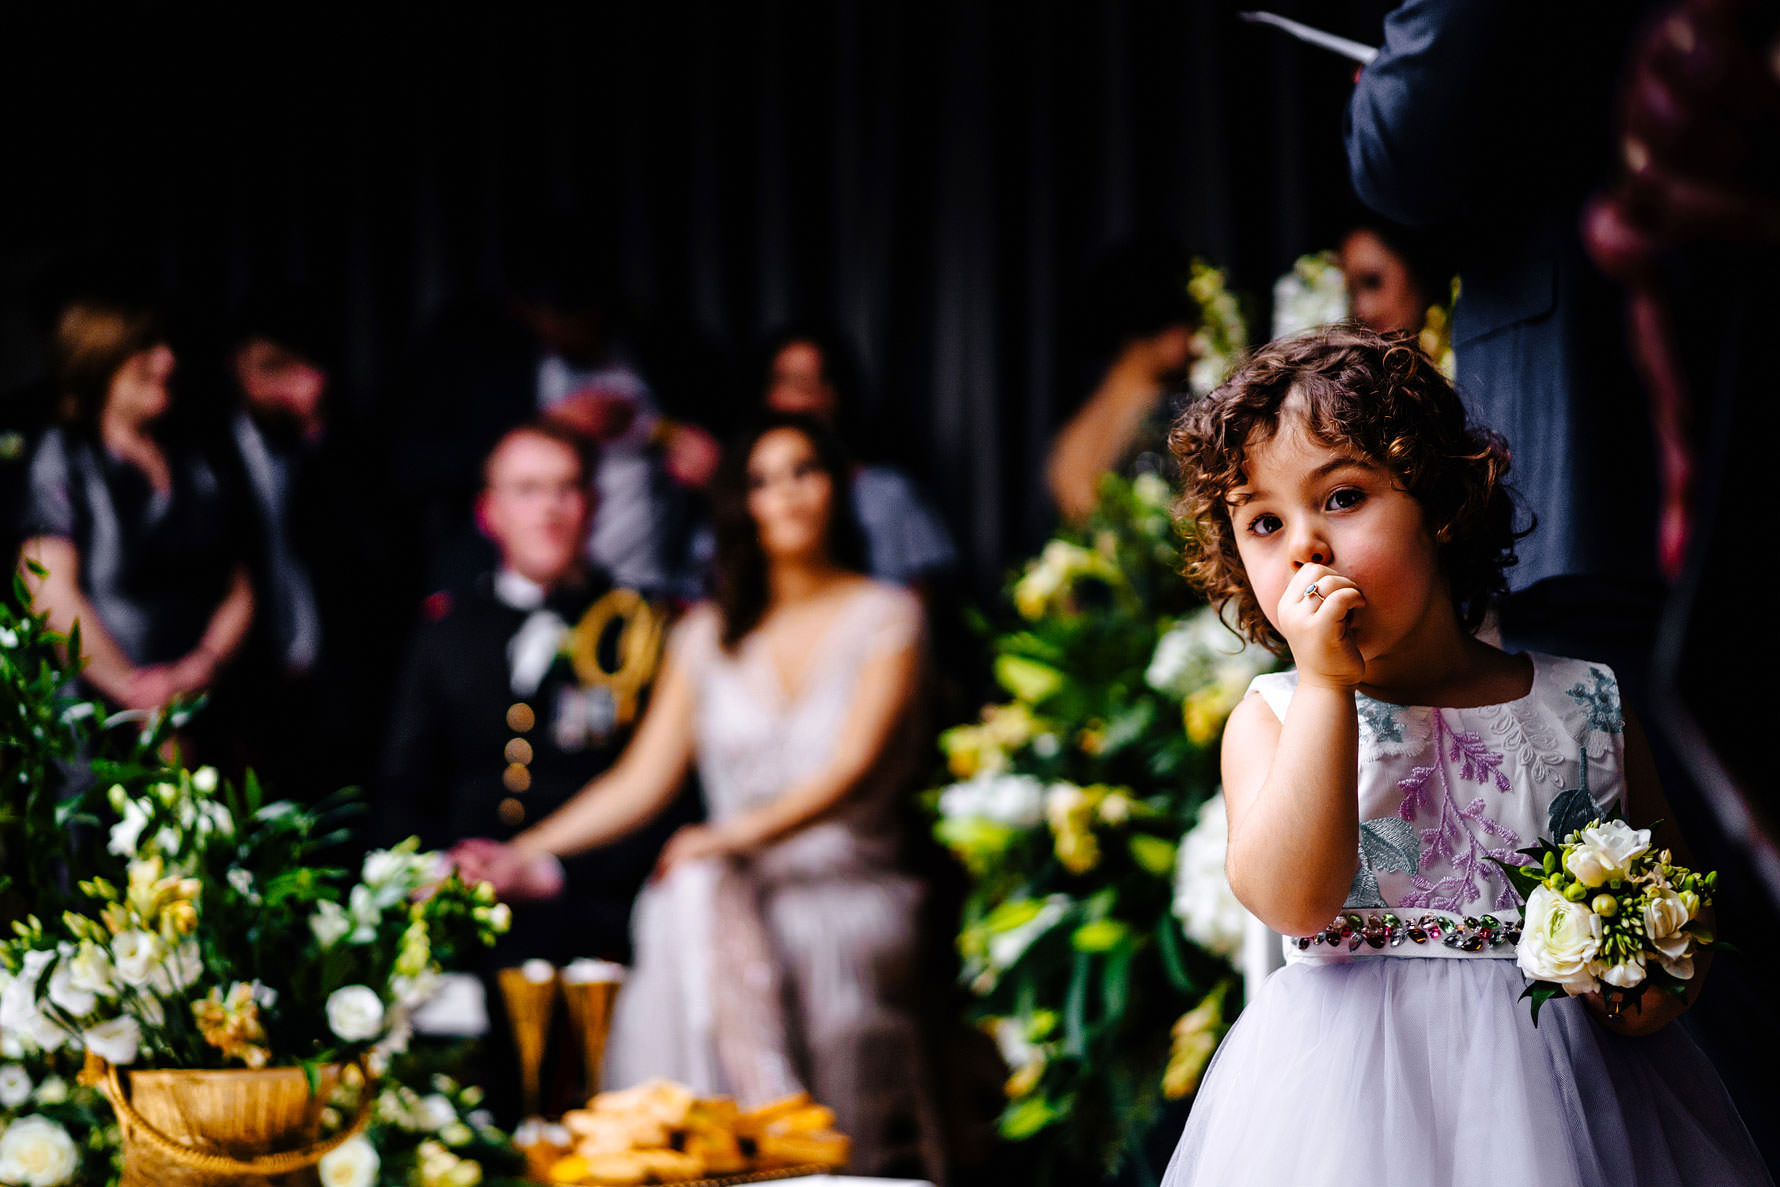 a little girl at a Persian wedding ceremony